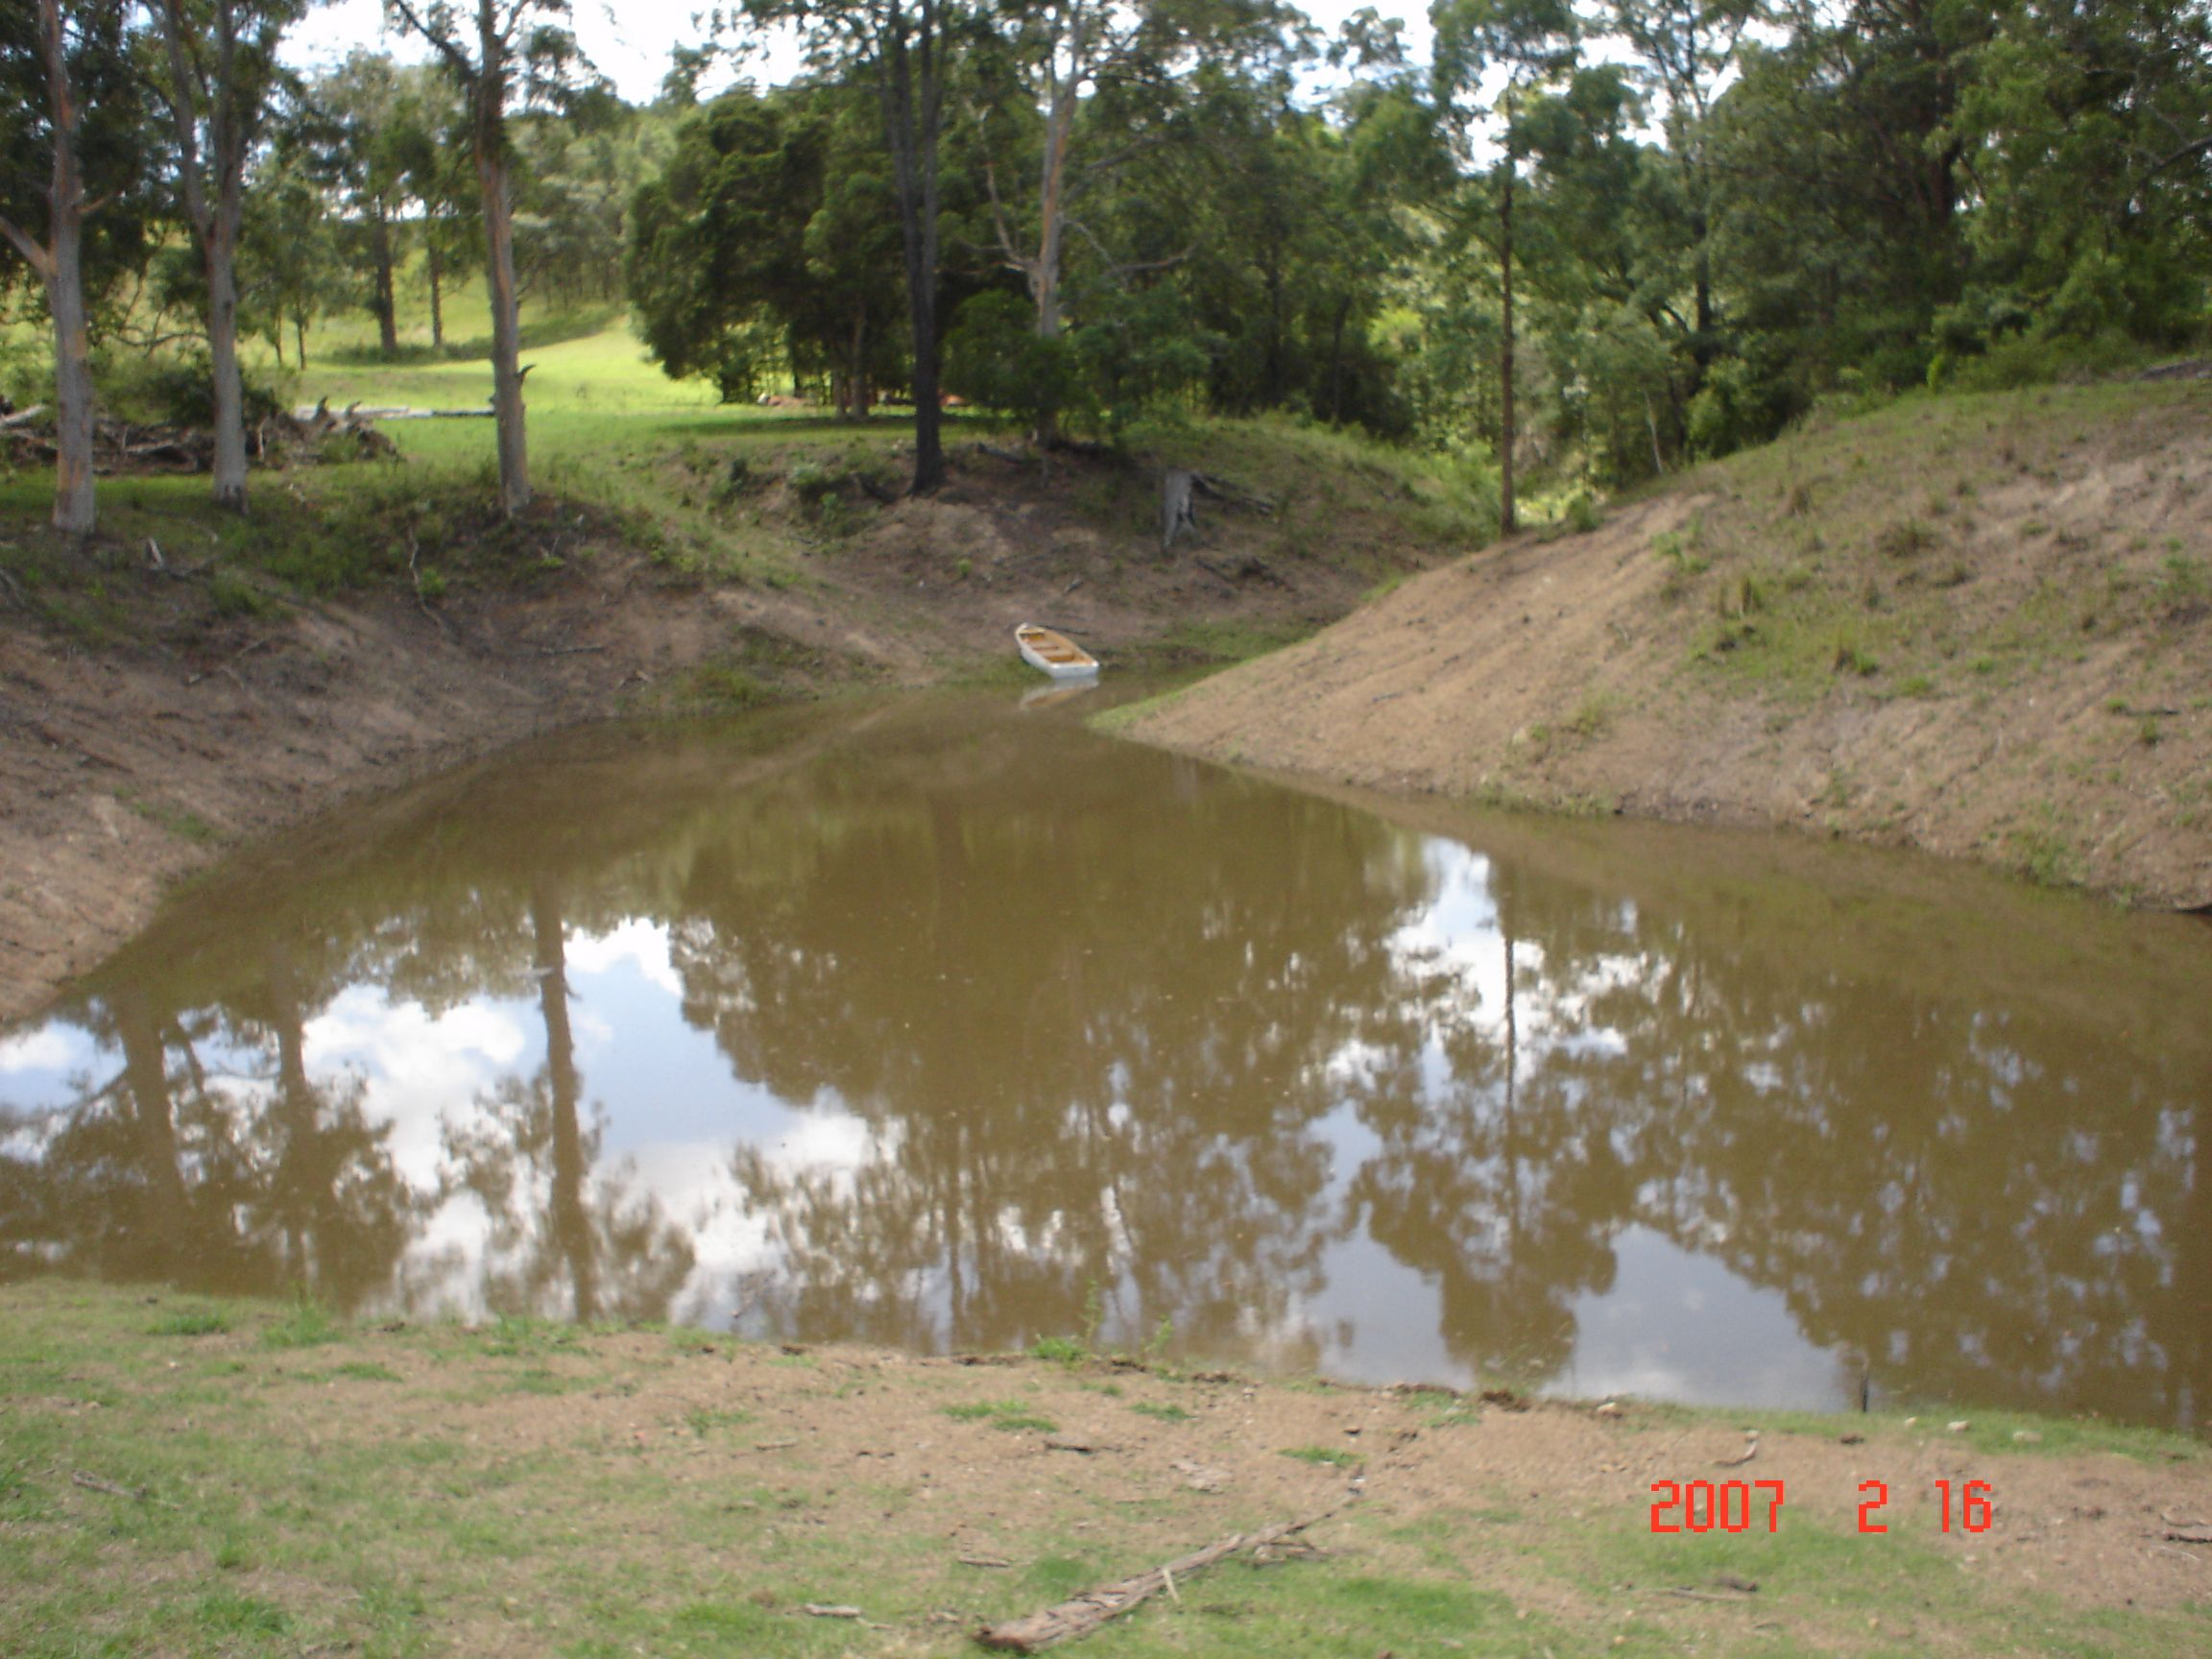 Dam or pond not filling? You may have a leak. Fix it NOW with Water$ave Plug & Seepage! Stop leaks fast without having to remove the existing water, more water the better. More info at www.polymerinnovations.com.au #stop #leak #sealer #agriculture #ag #farm #drought